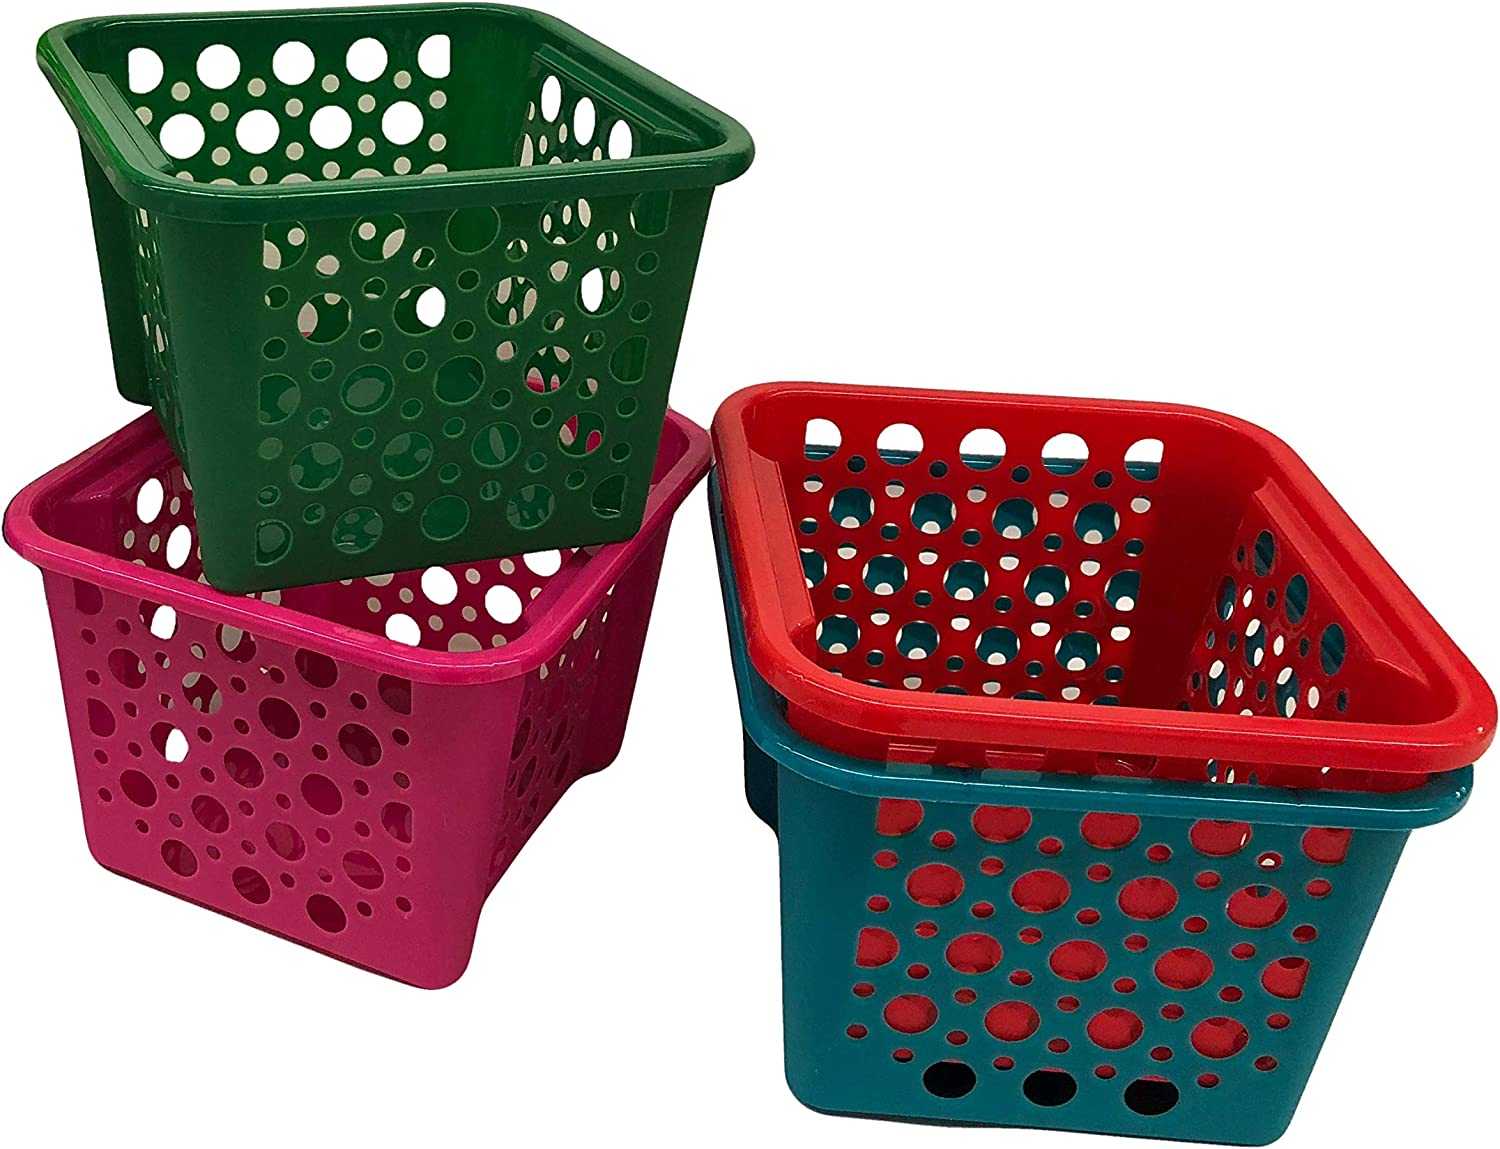 Storage Pantry Organization Baskets for Shelf Stackable Bins for Classroom Library Organizing Toy Green Set of 4 Under Sink Organizer (Assorted, 4)